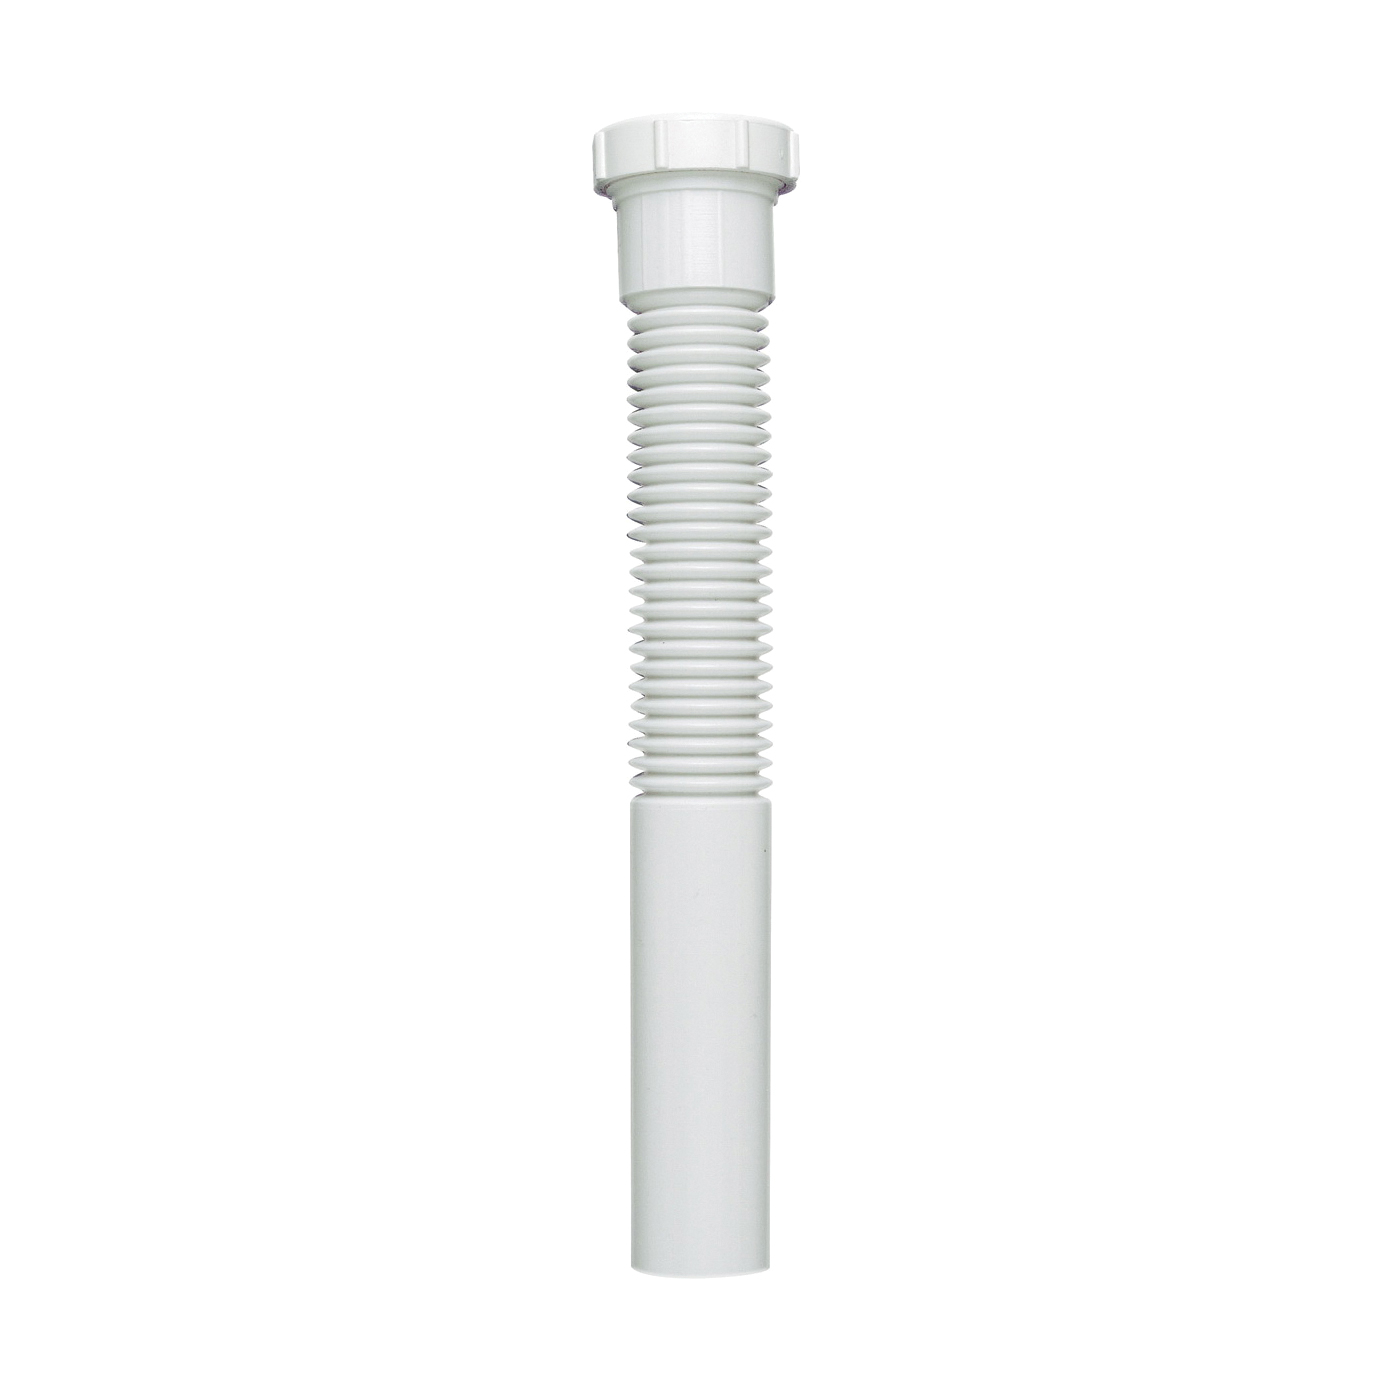 Picture of Plumb Pak PP812-6 Extension Tube, 1-1/2 in, 12 in L, Slip Joint, Polypropylene, White